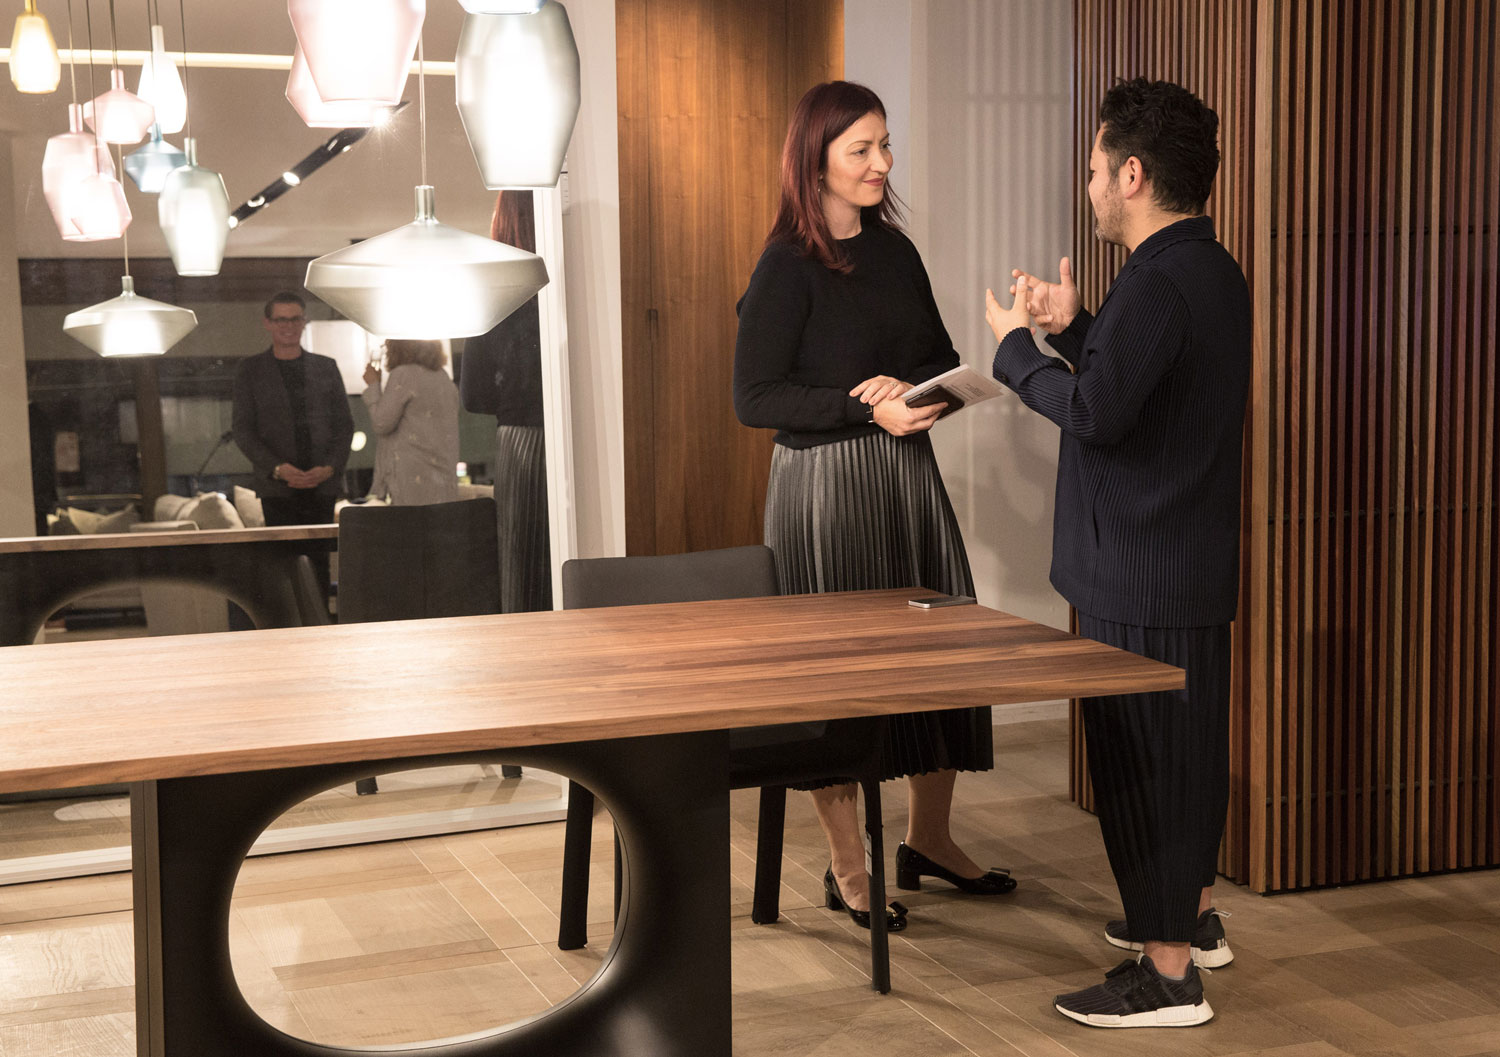 Kensaku Oshiro & Dana Tomic Hughes at Fanuli Furniture Sydney Showroom | Yellowtrace